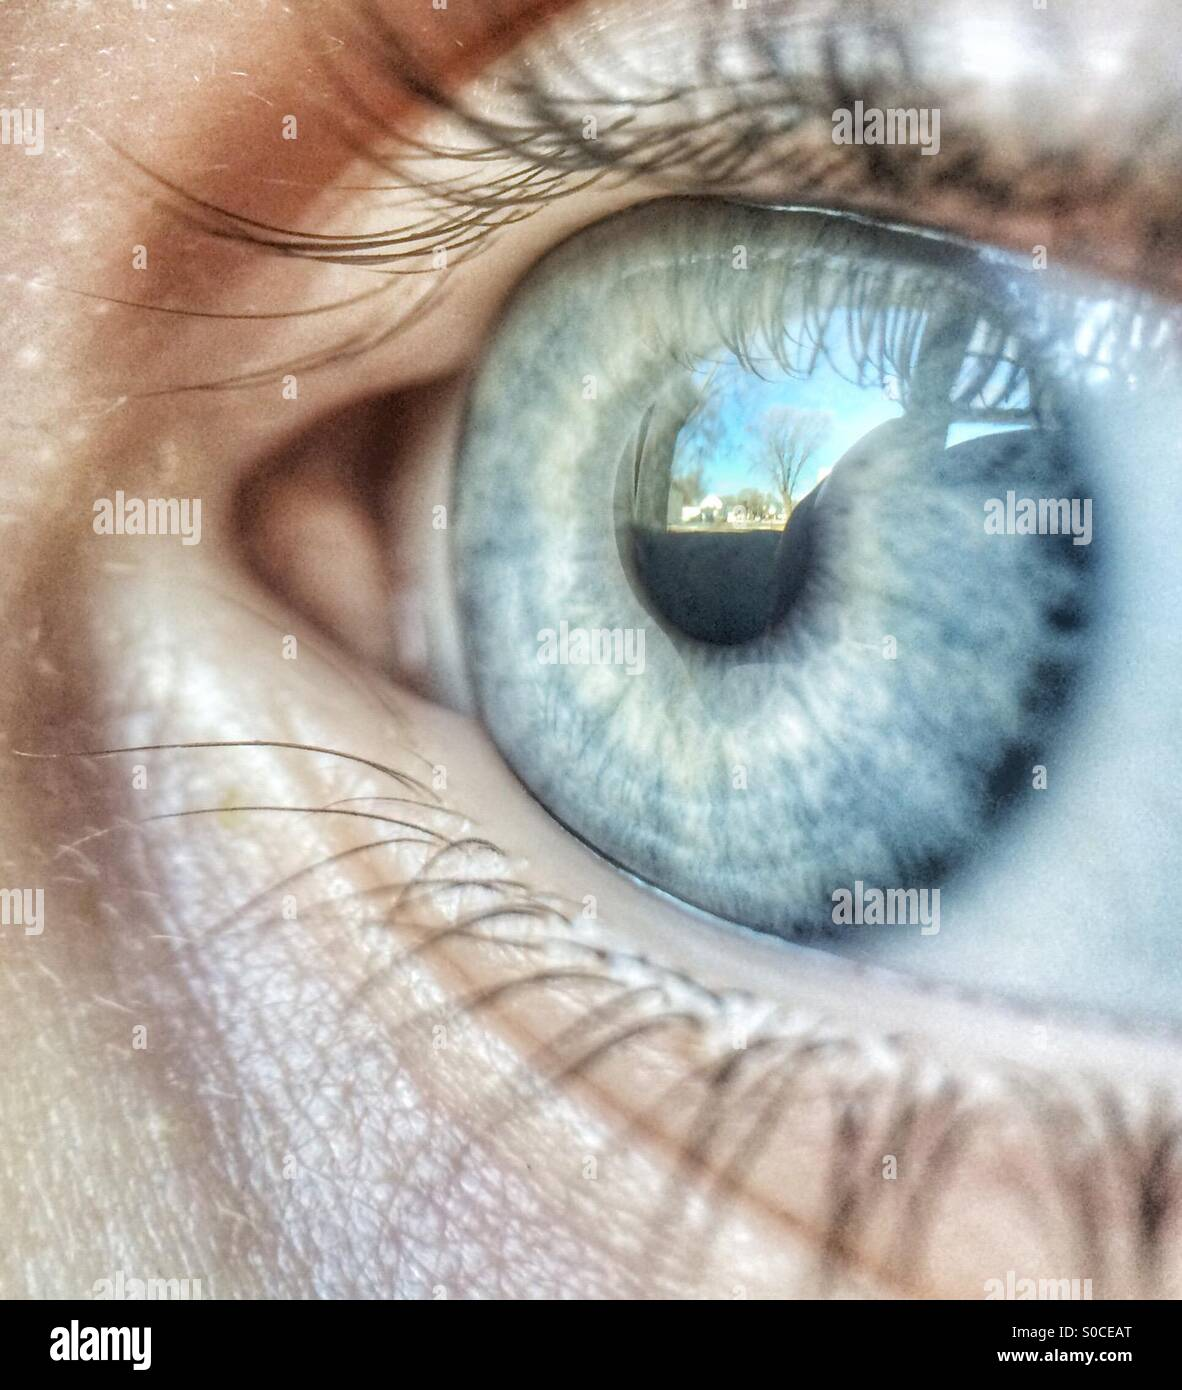 Macro photo of a child's eye reflecting the scene he is looking at - Stock Image